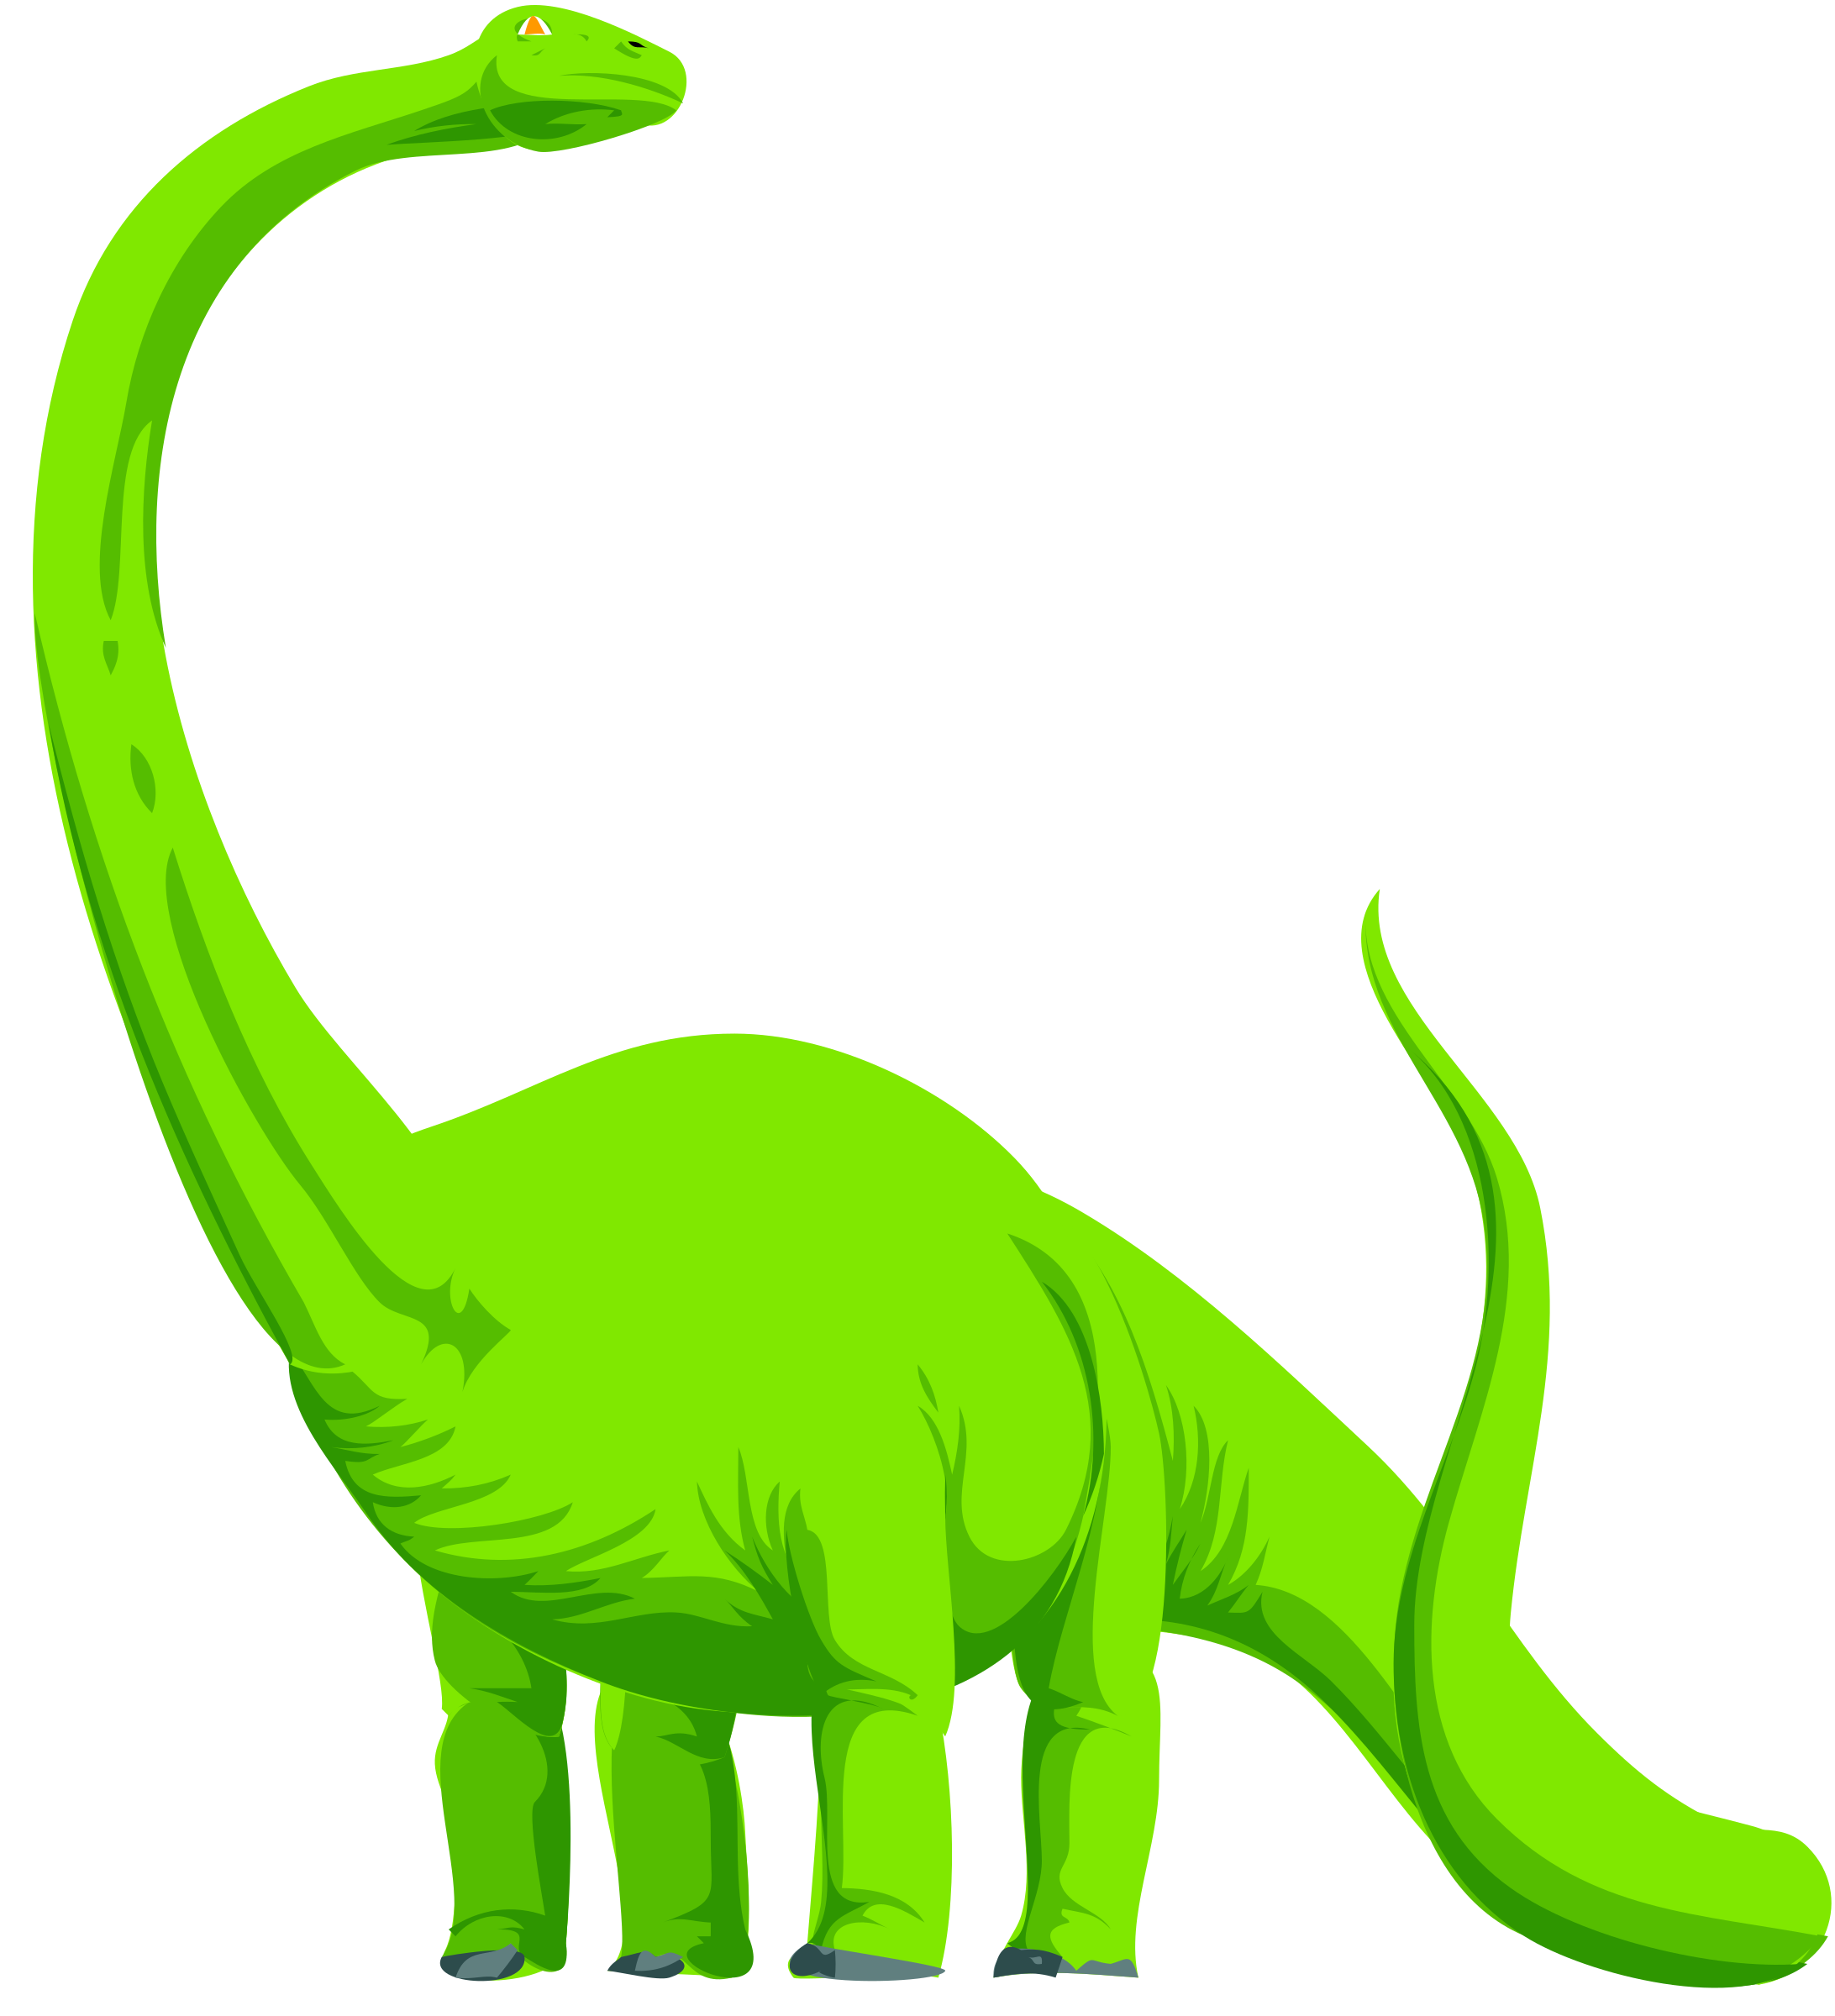 Green dinosaur png. Architetto dino icons free